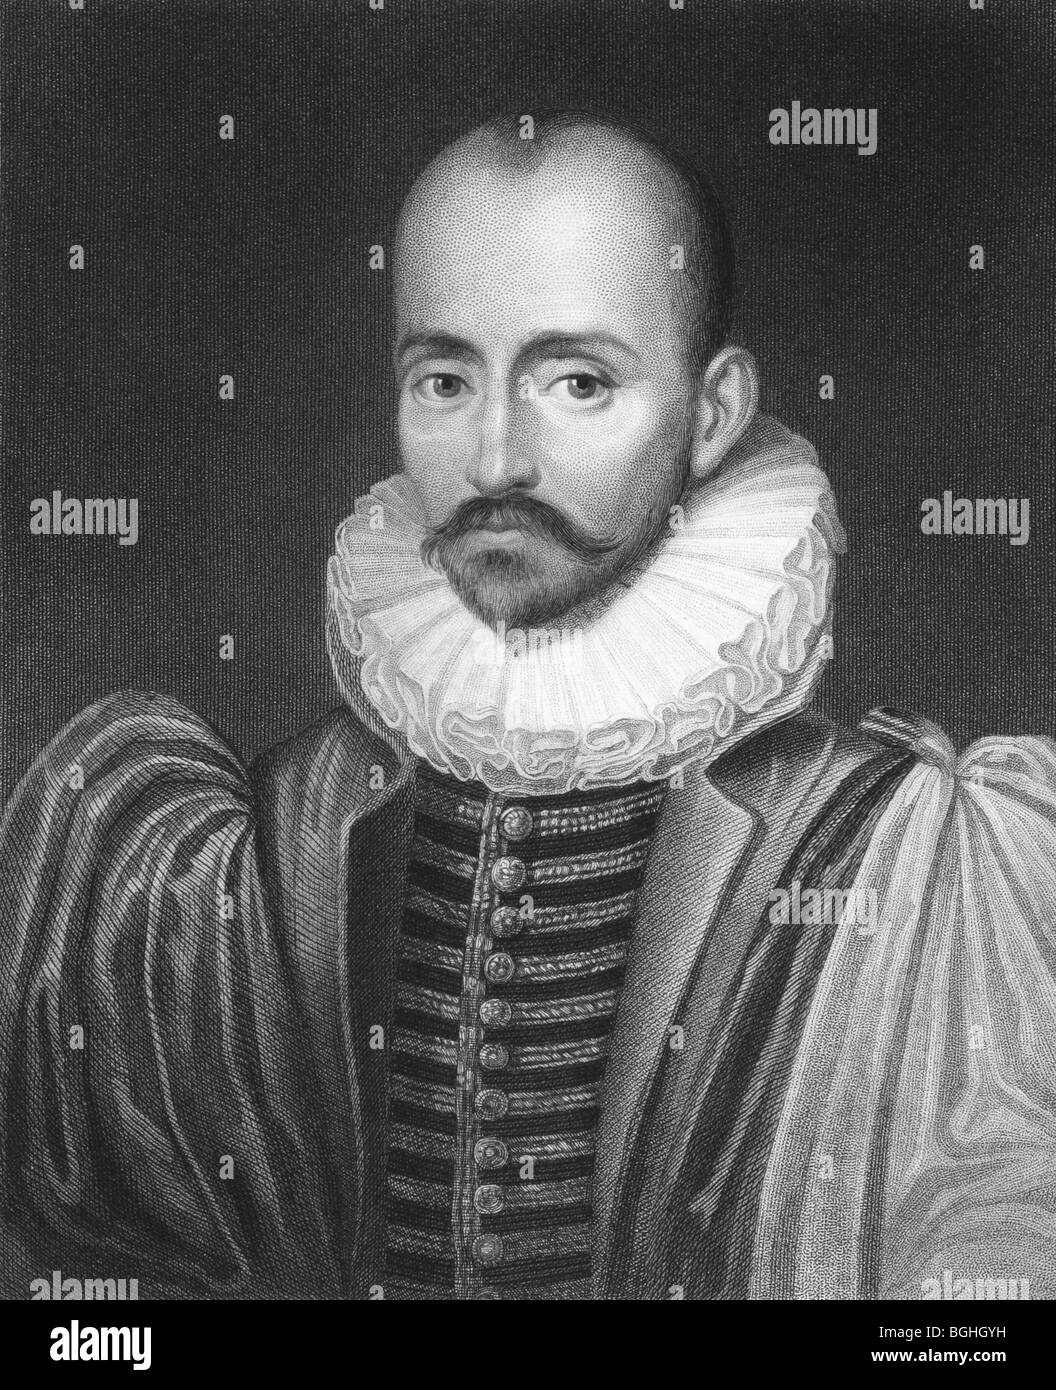 Michel de Montaigne on engraving from the 1850s. One of the most influential writers of the French renaissance. - Stock Image